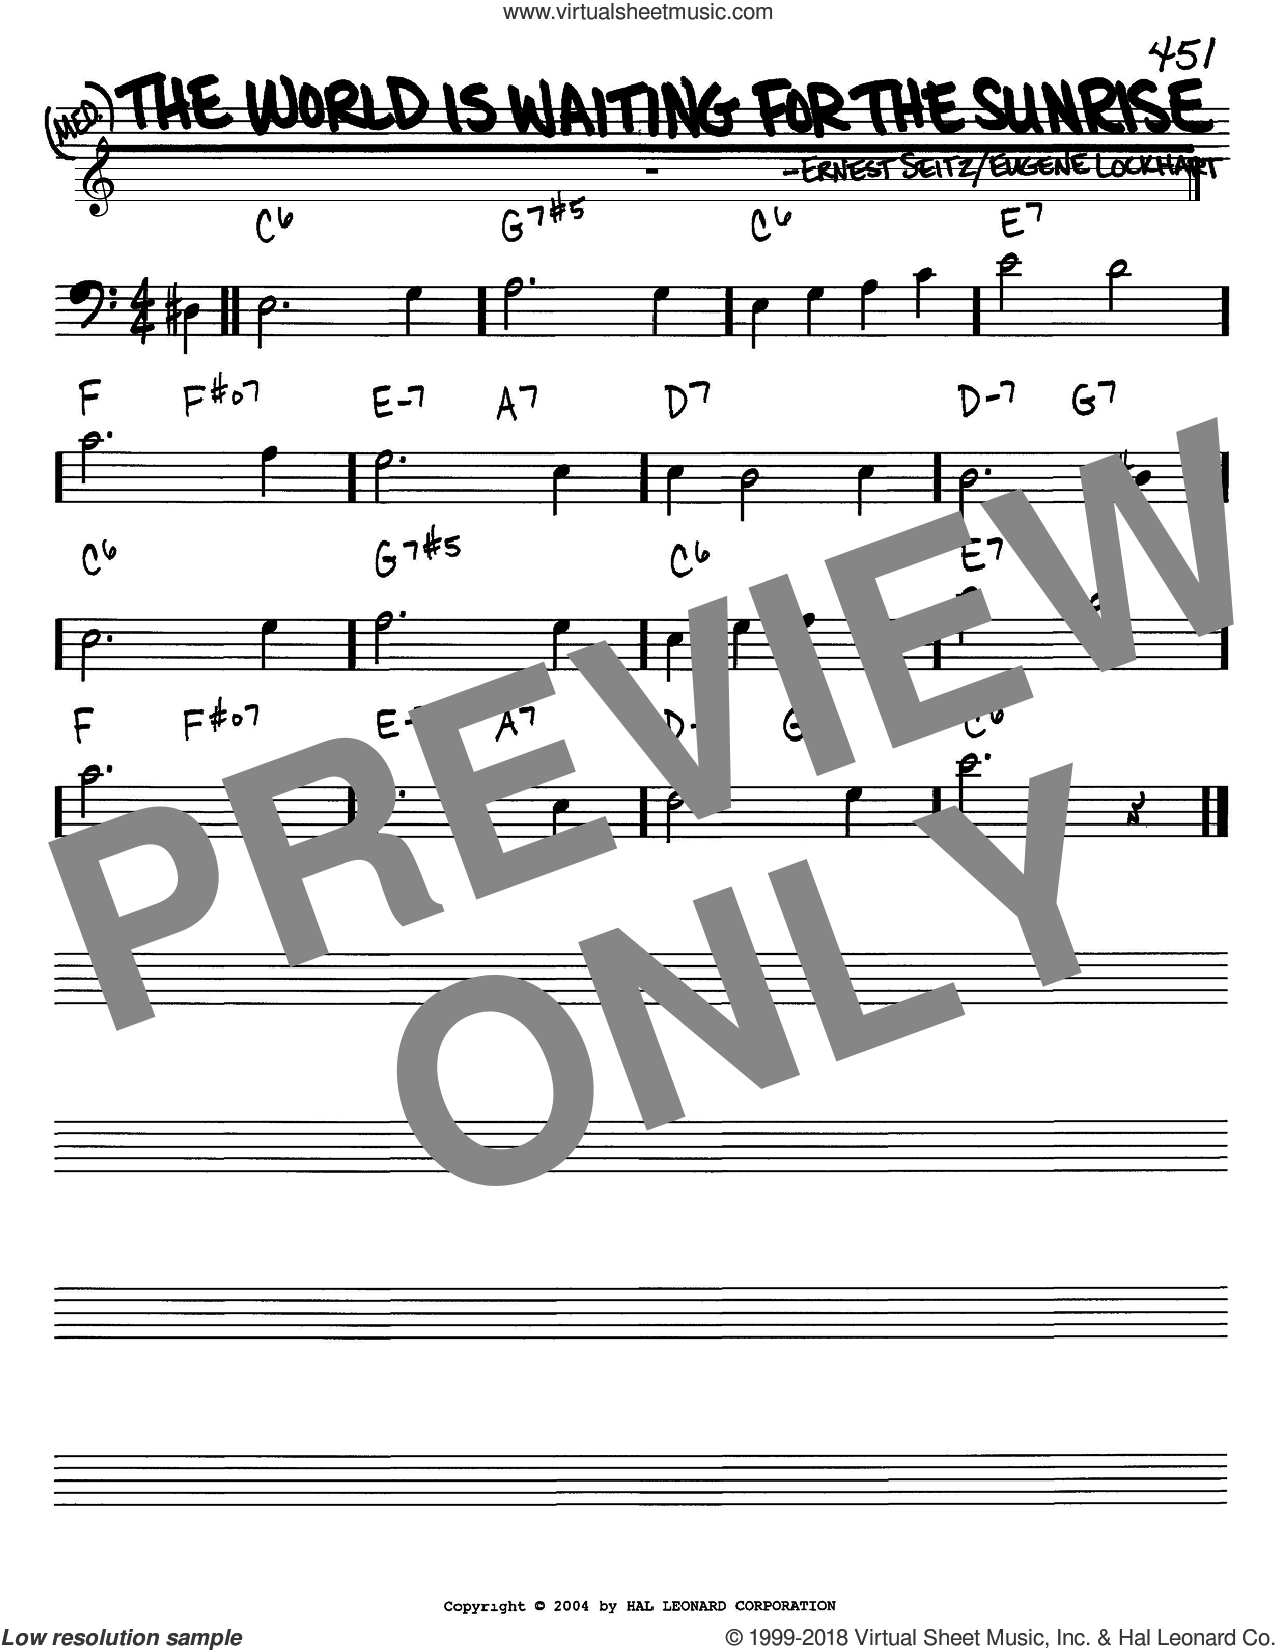 The World Is Waiting For The Sunrise sheet music for voice and other instruments (Bass Clef ) by Ernest Seitz and Eugene Lockhart. Score Image Preview.